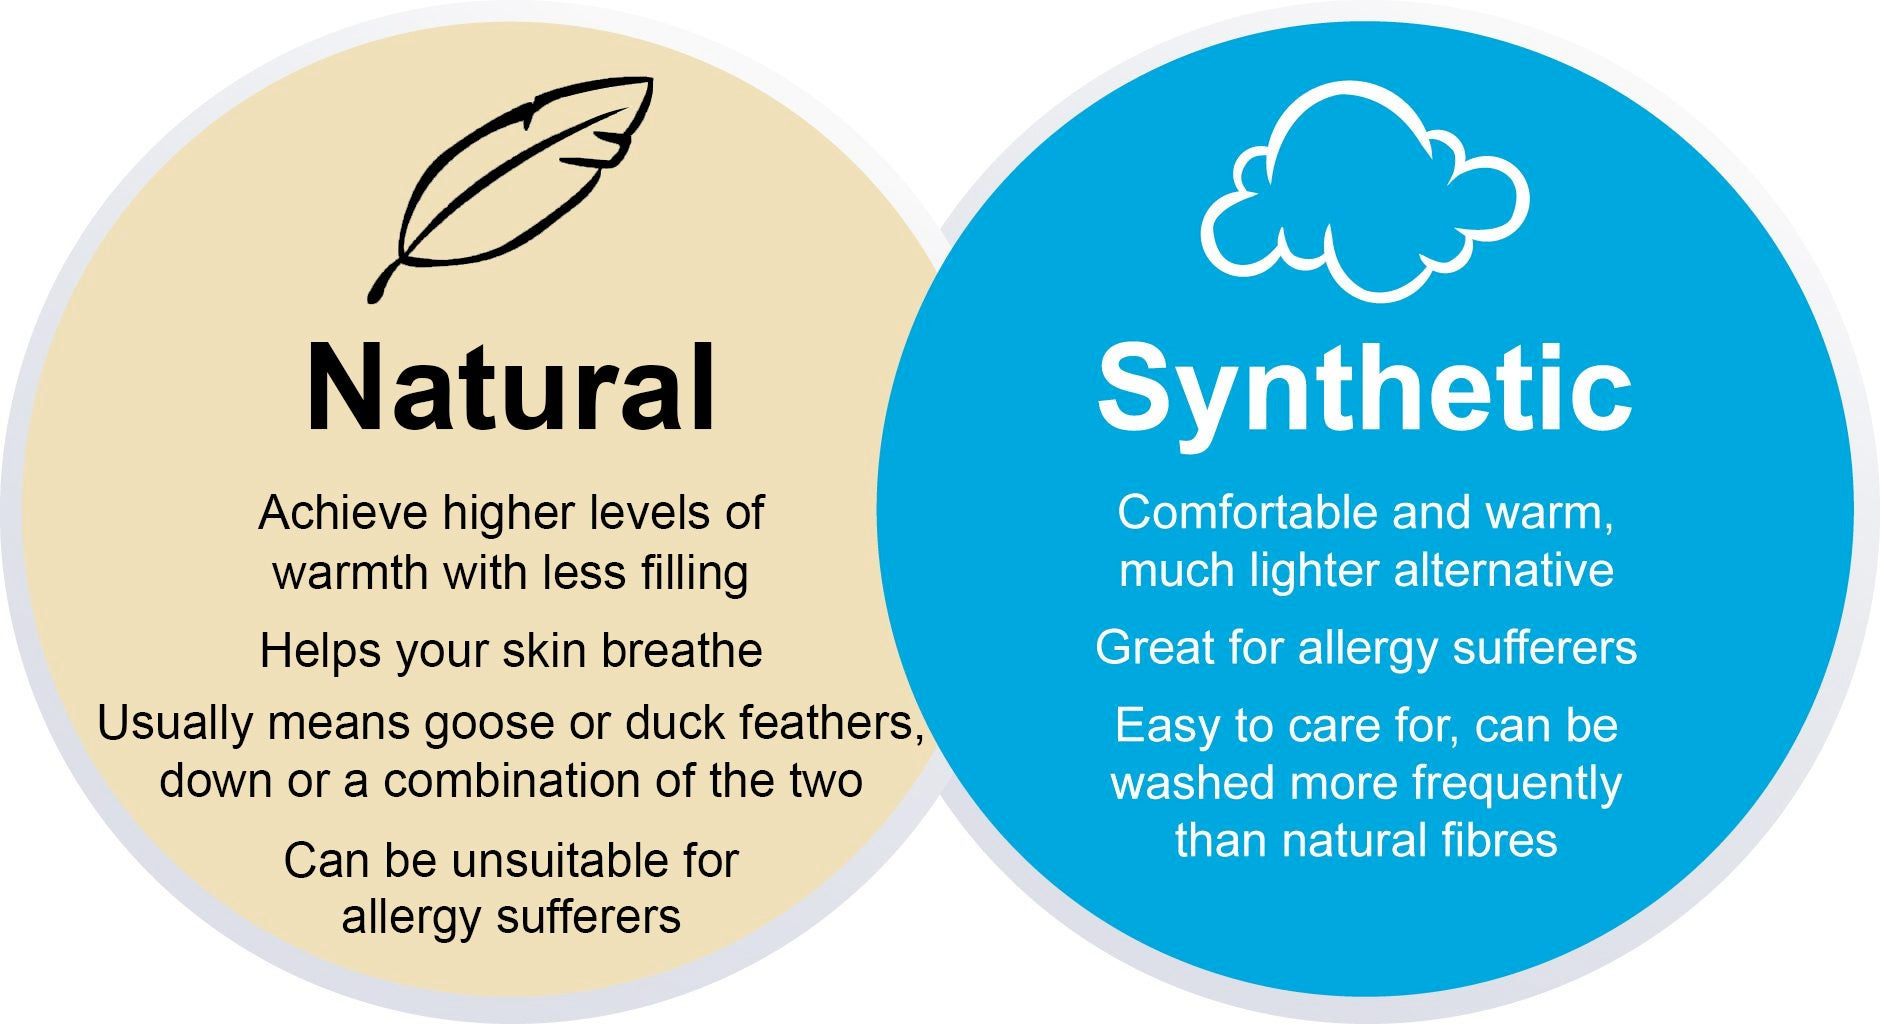 Natural Vs Synthetic Definition